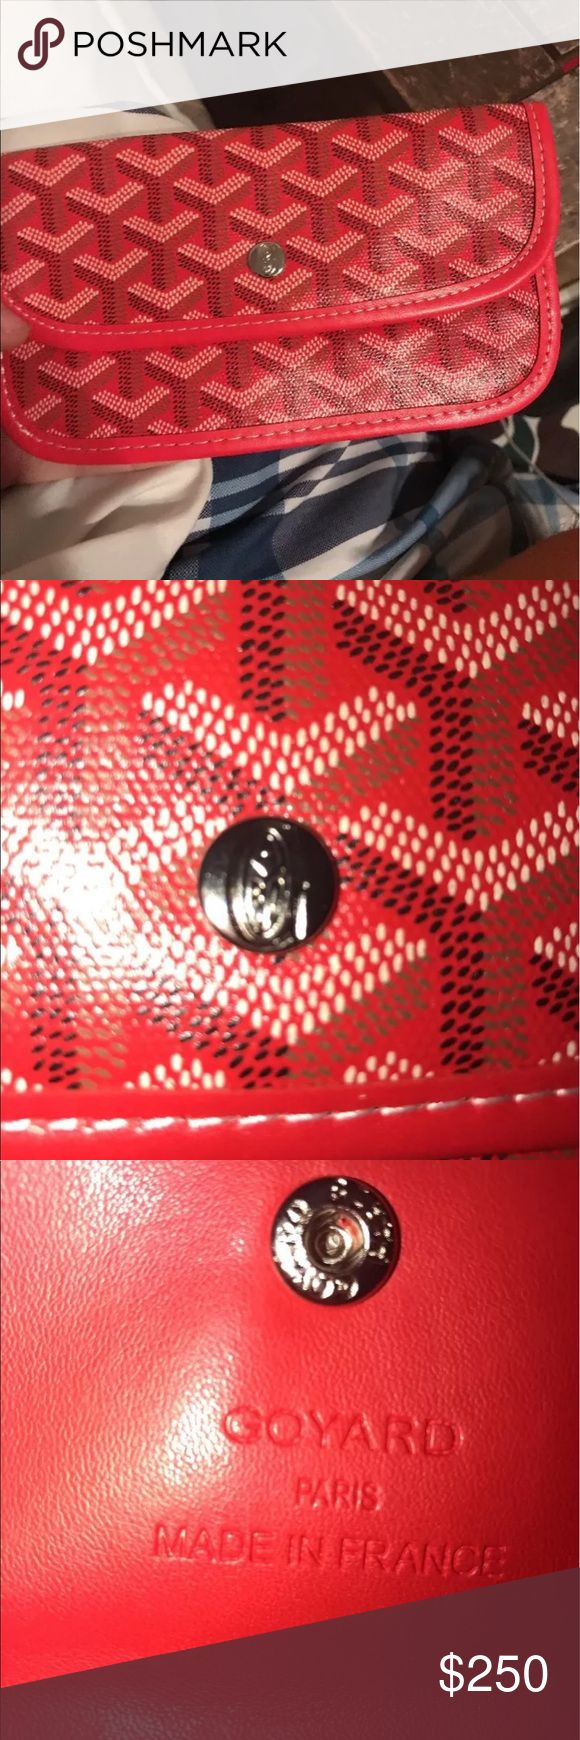 Goyard wallet/clutch Brand new, I have the bag that come with it if anyone is interested. Lower price available thru ️️ Goyard Accessories